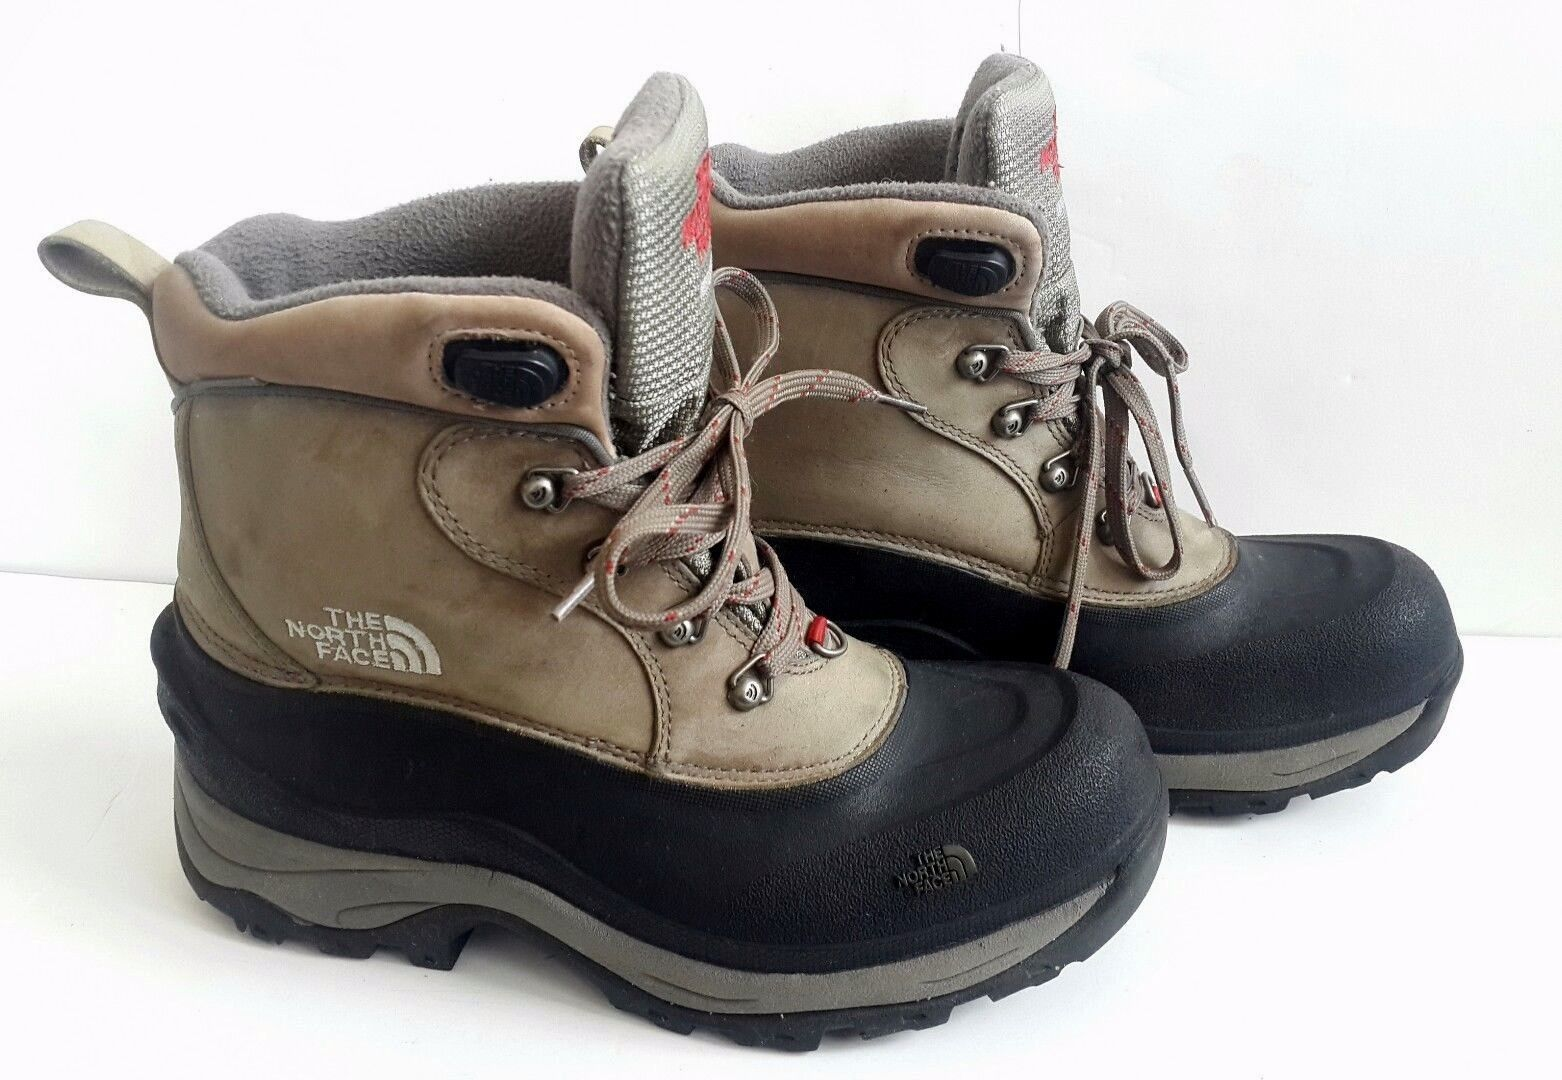 f994a91f9 Details about The North Face Youth Size 2 Winter Snow Boots Black ...